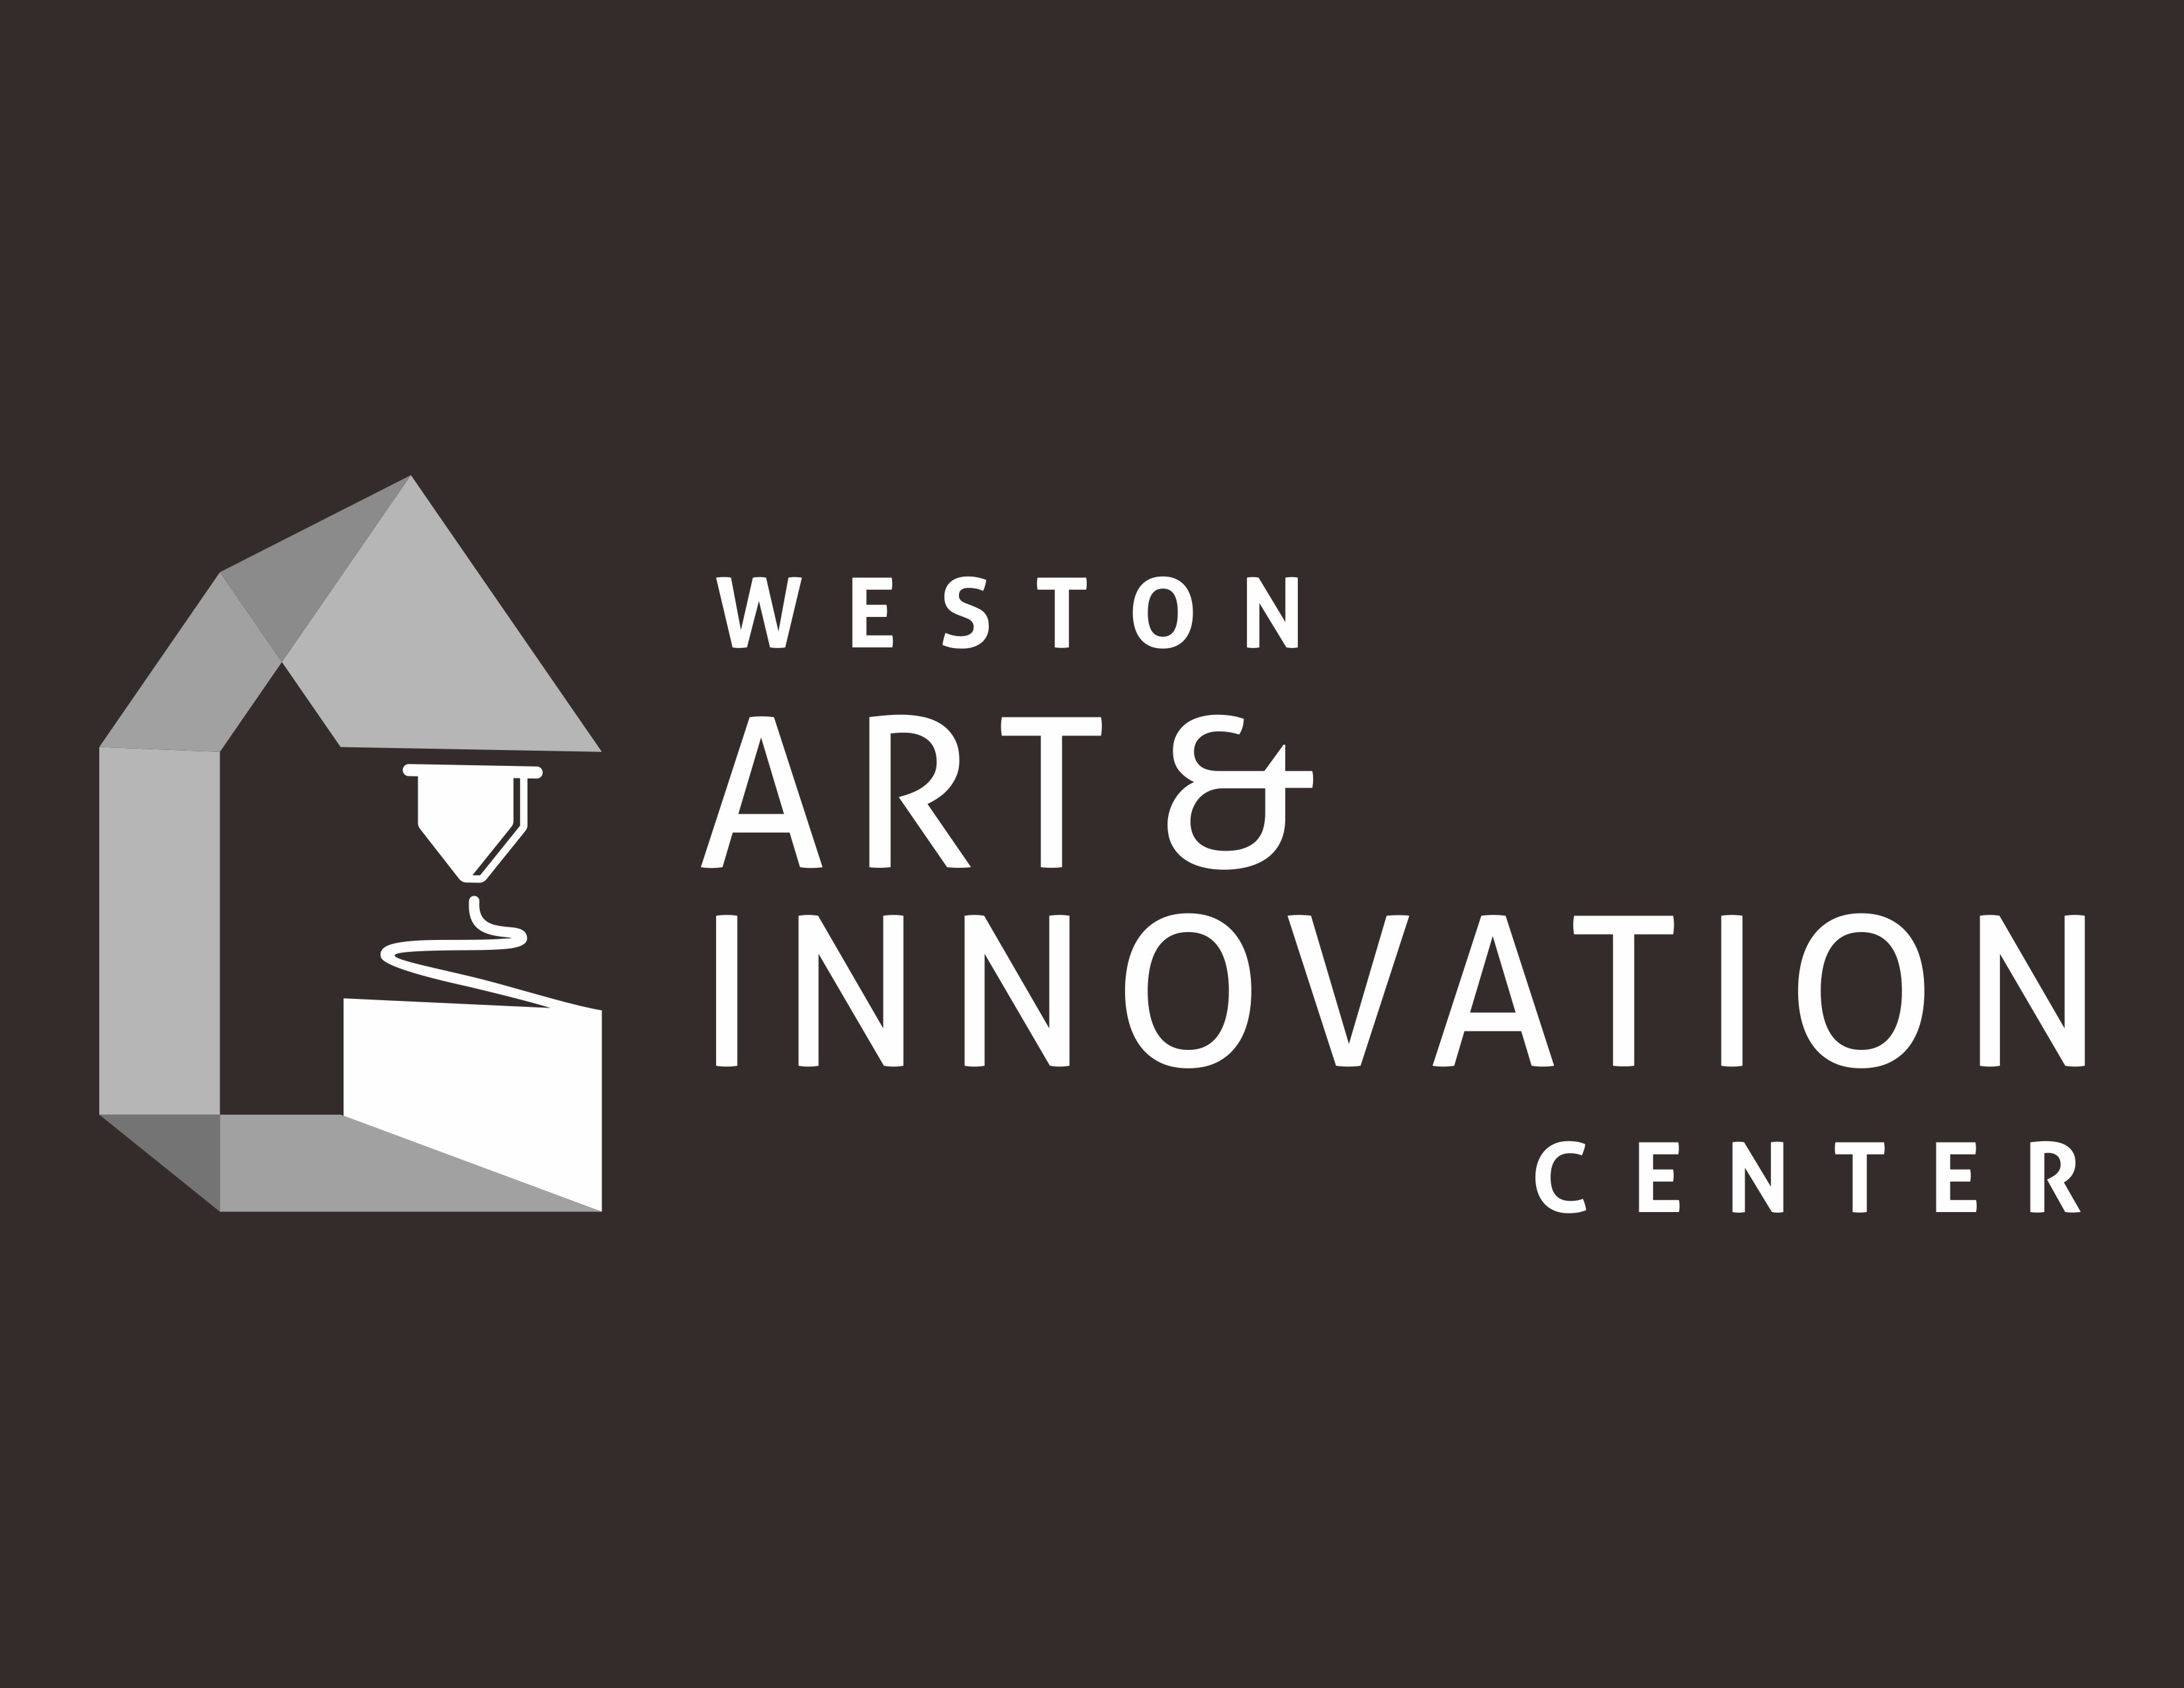 Design a logo for the Art & Innovation Center that combines creativity and curiosity